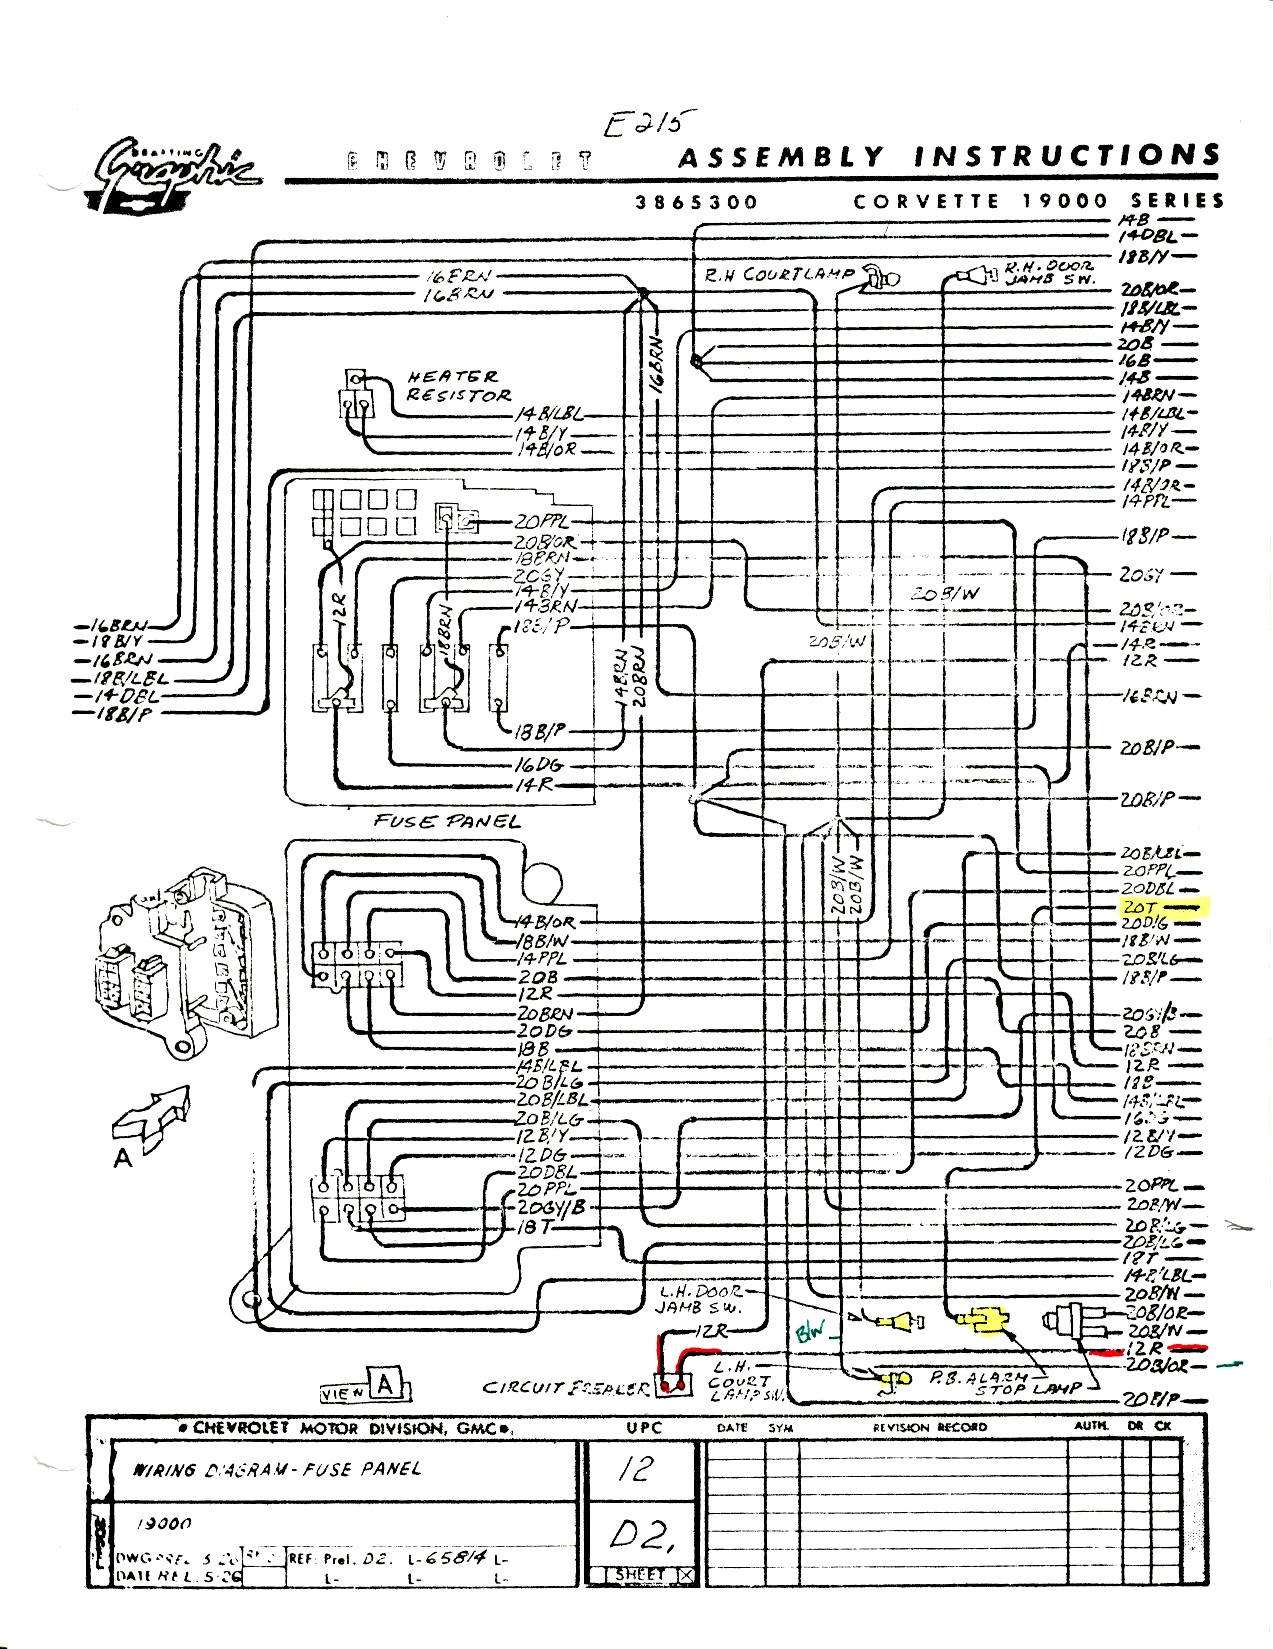 C2 Corvette Dash Wiring Diagram 1973 1966 Headlight 1965 With A C On